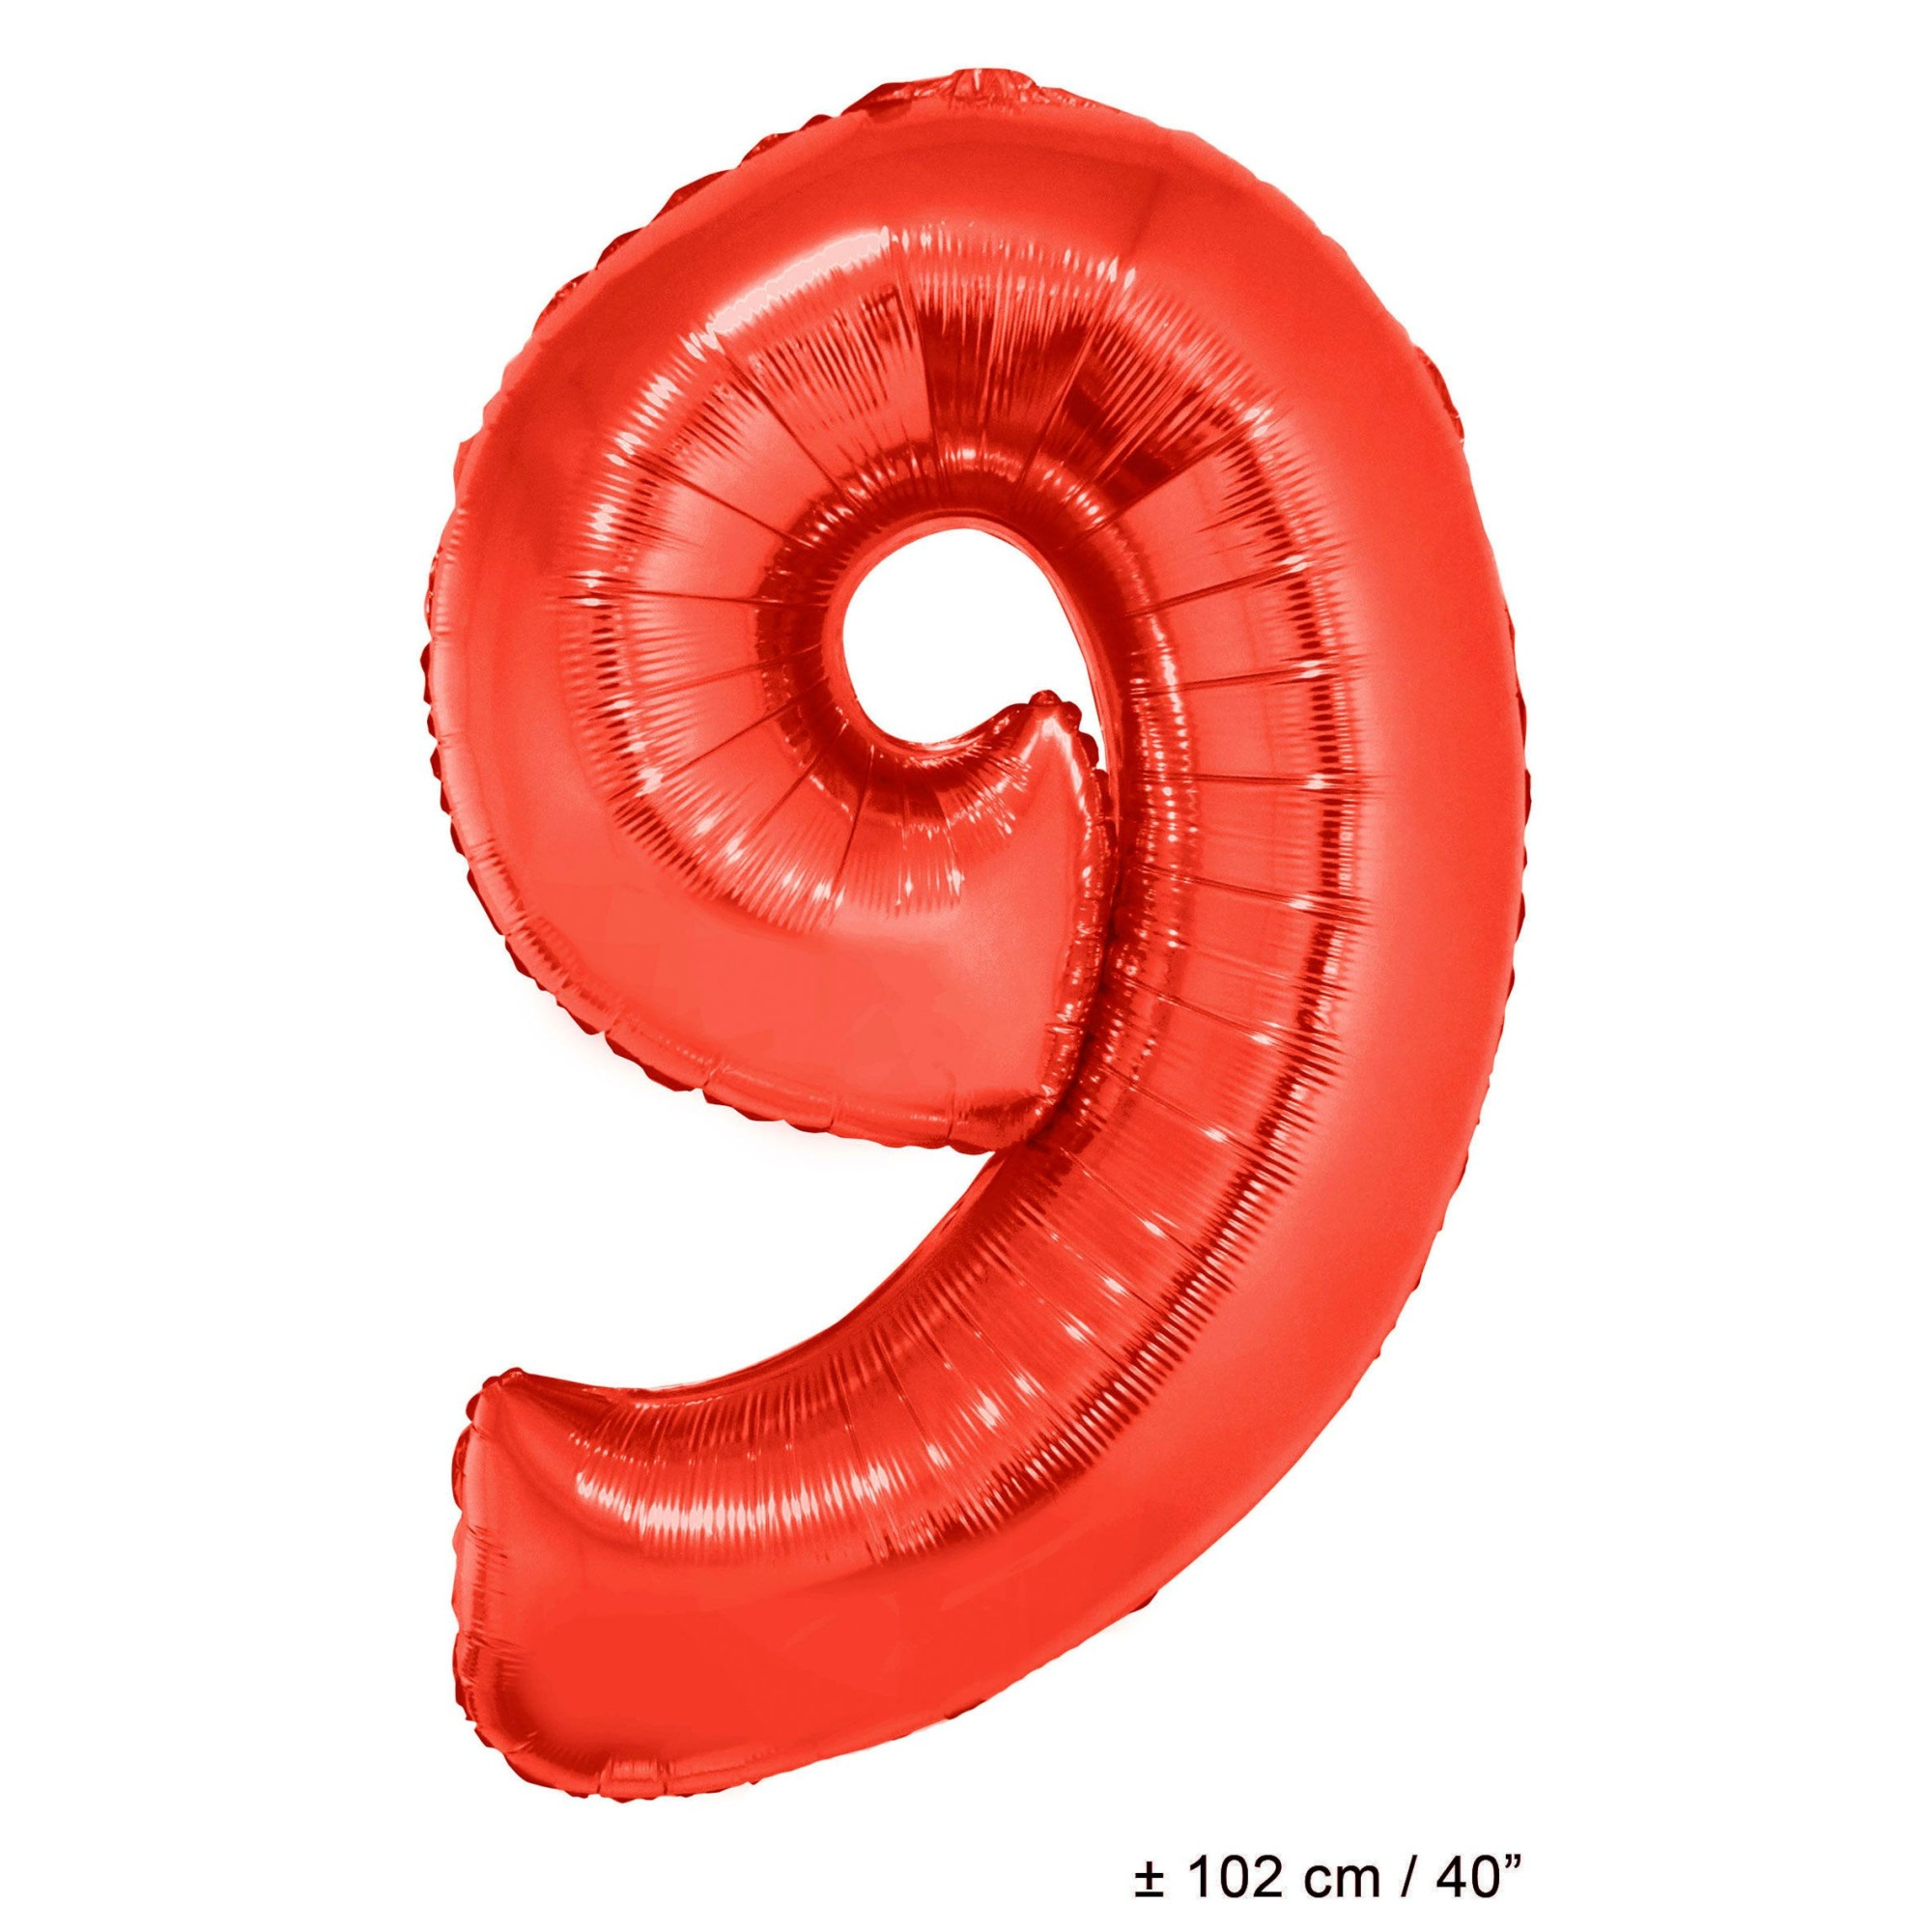 Balloon-foil-number 9-40 U0026quot -red - Walmart Com